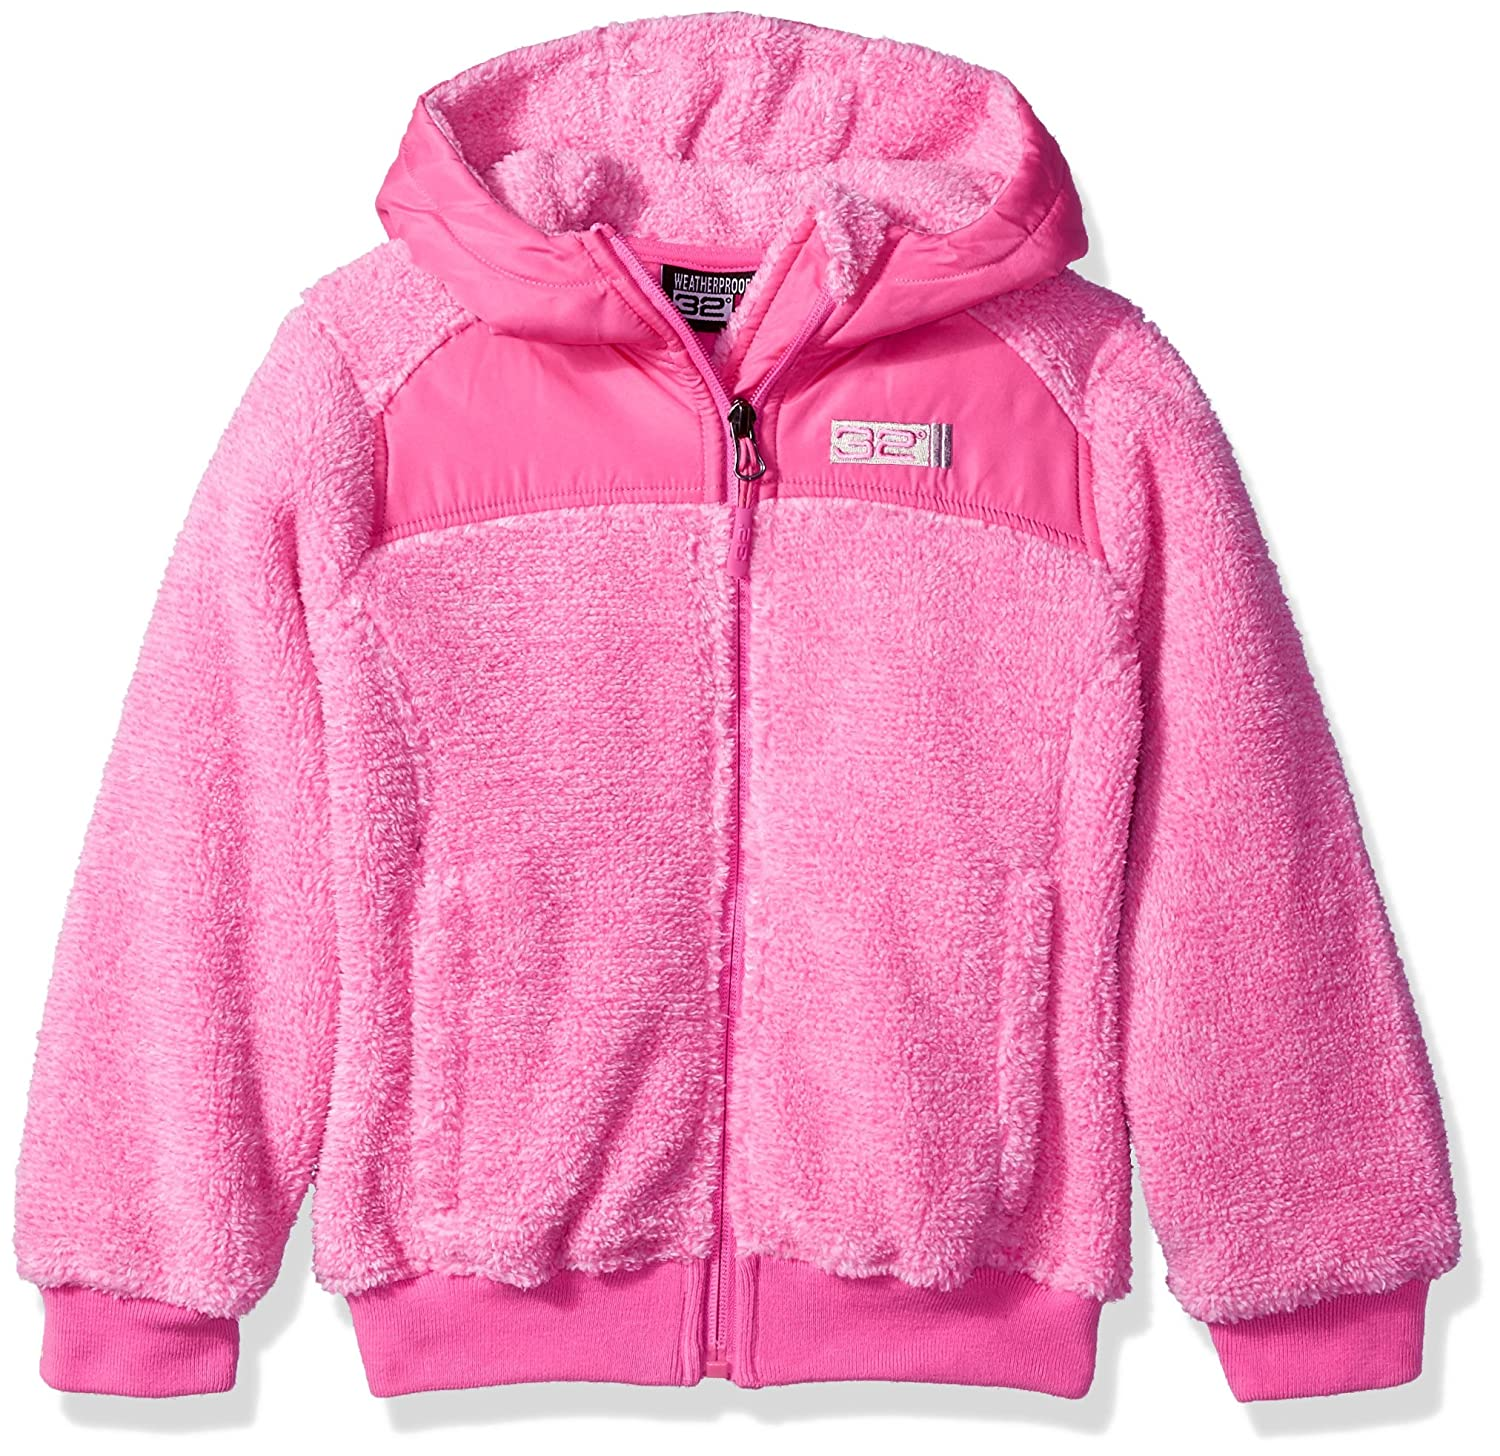 32 DEGREES Weatherproof Little Girls Outerwear Jacket (More Styles Available), Two Toned-WG198-Fuchsia, 4